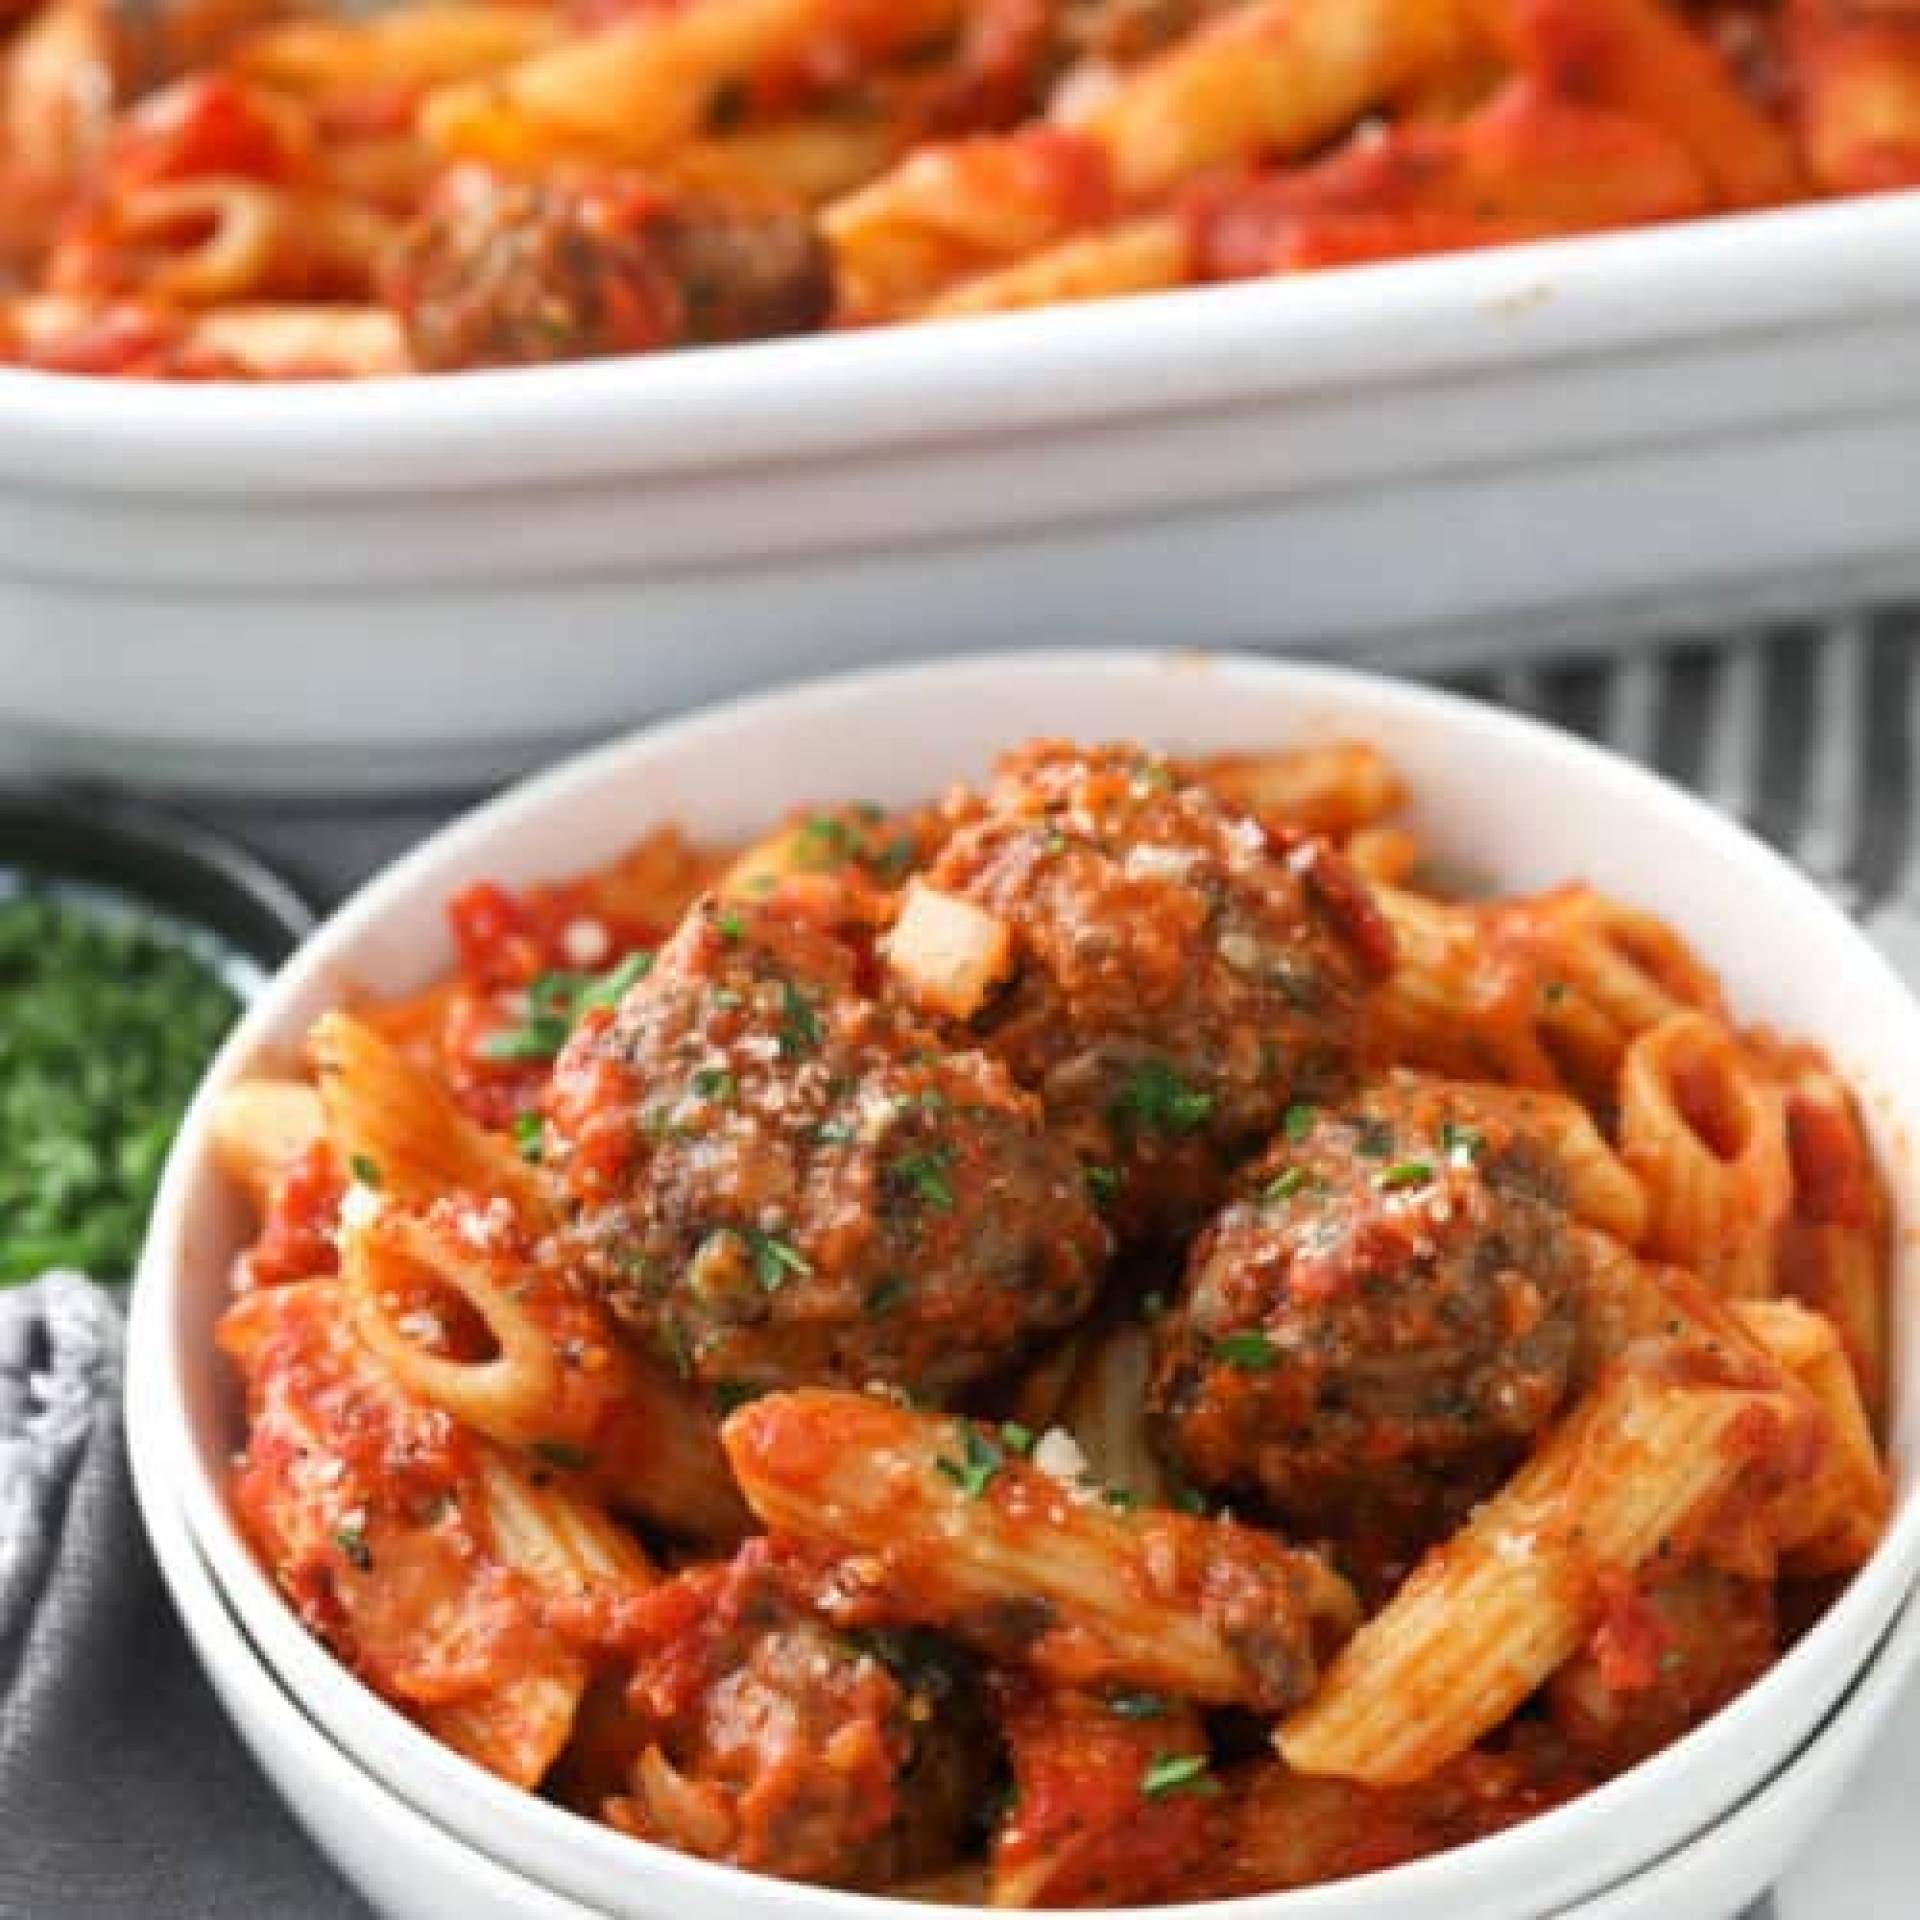 Turkey and Beef Meatballs with Penne Pasta